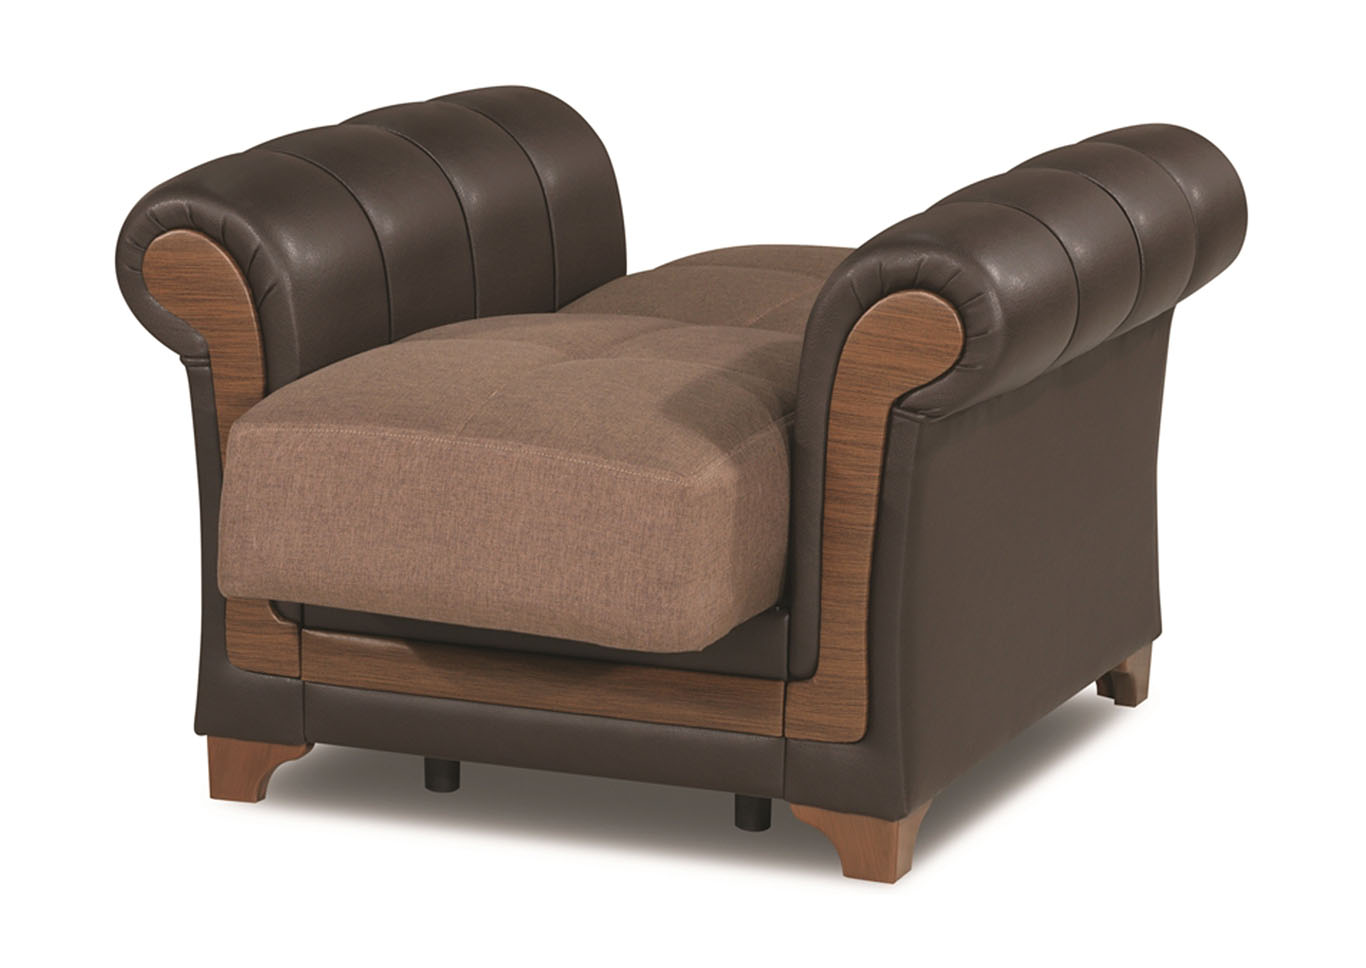 Dream Decor Brown Polyester Chair,CasaMode Functional Furniture